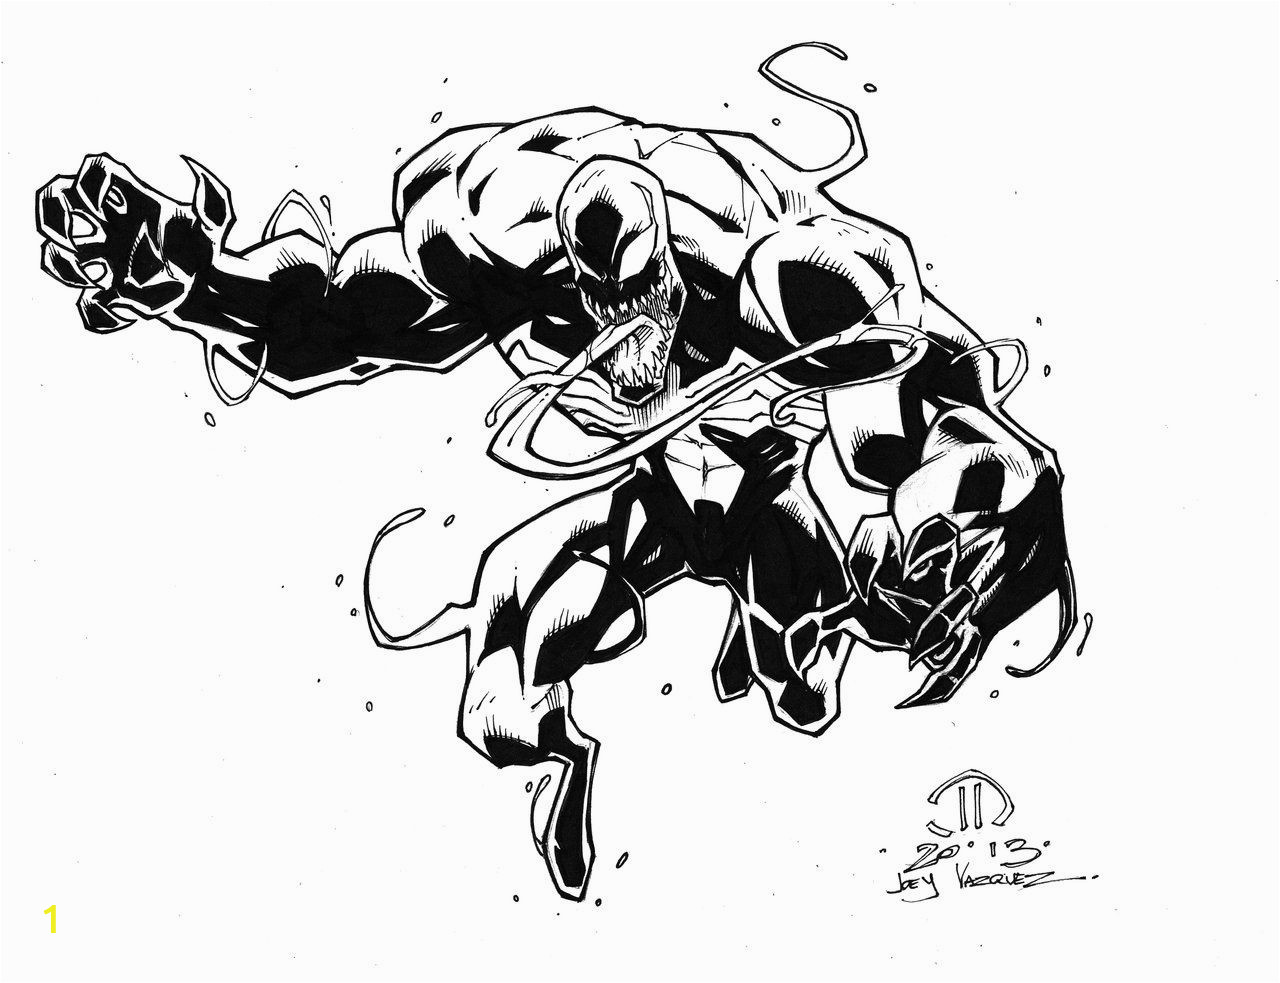 Coloring Pages Of Spiderman and Venom Venom Inked Up by Joeyvazquezviantart On Deviantart